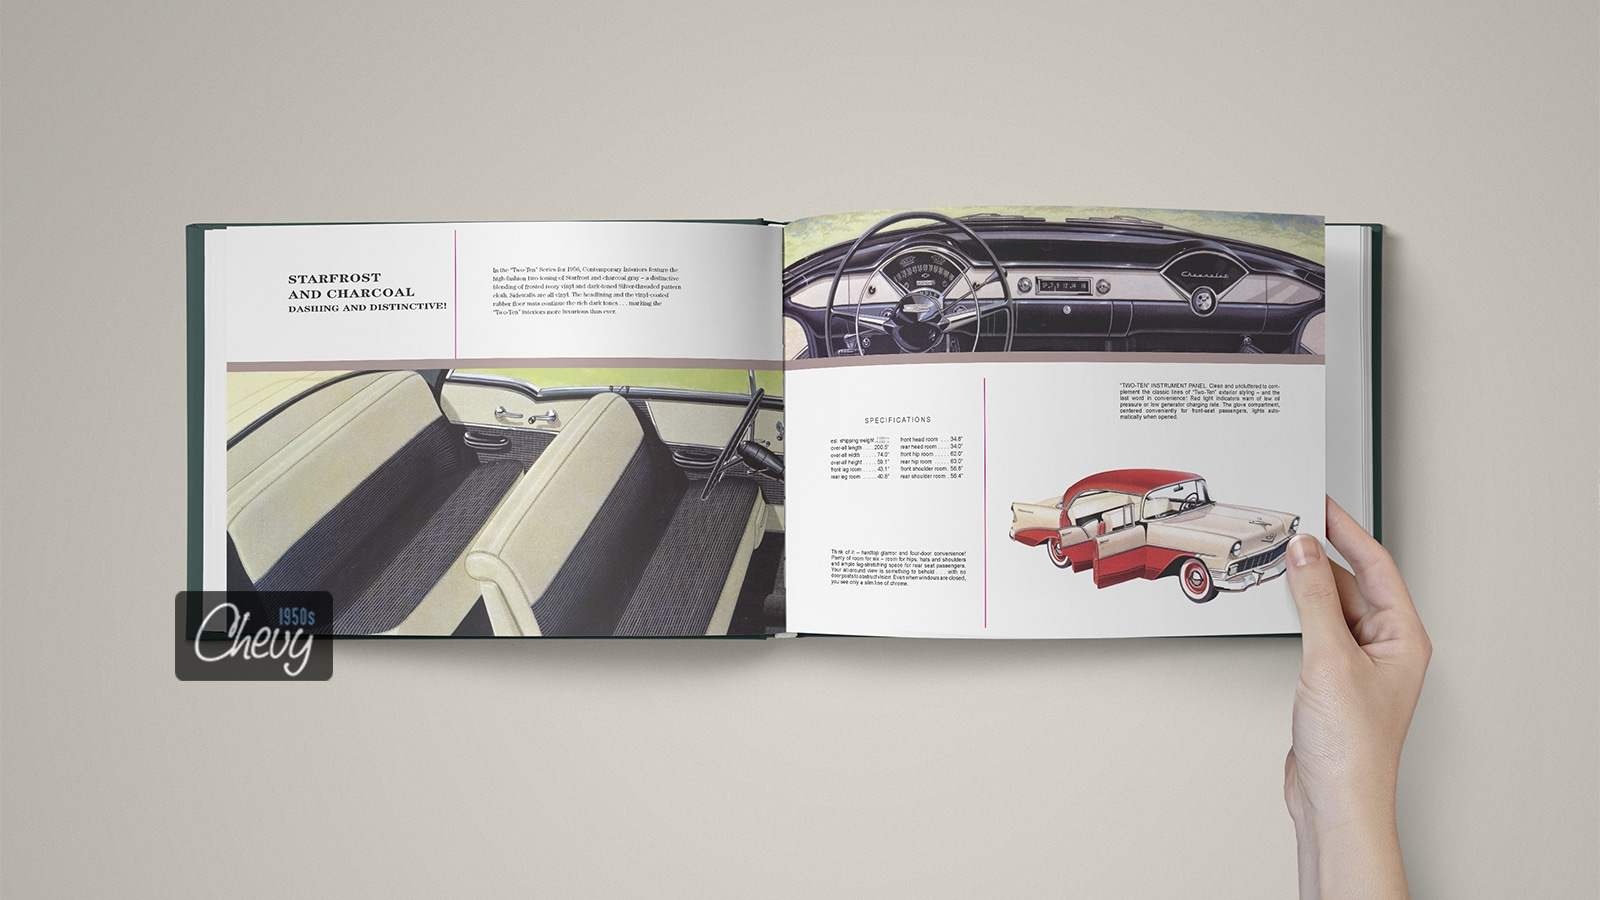 1956 Chevrolet Showroom Album Book 06